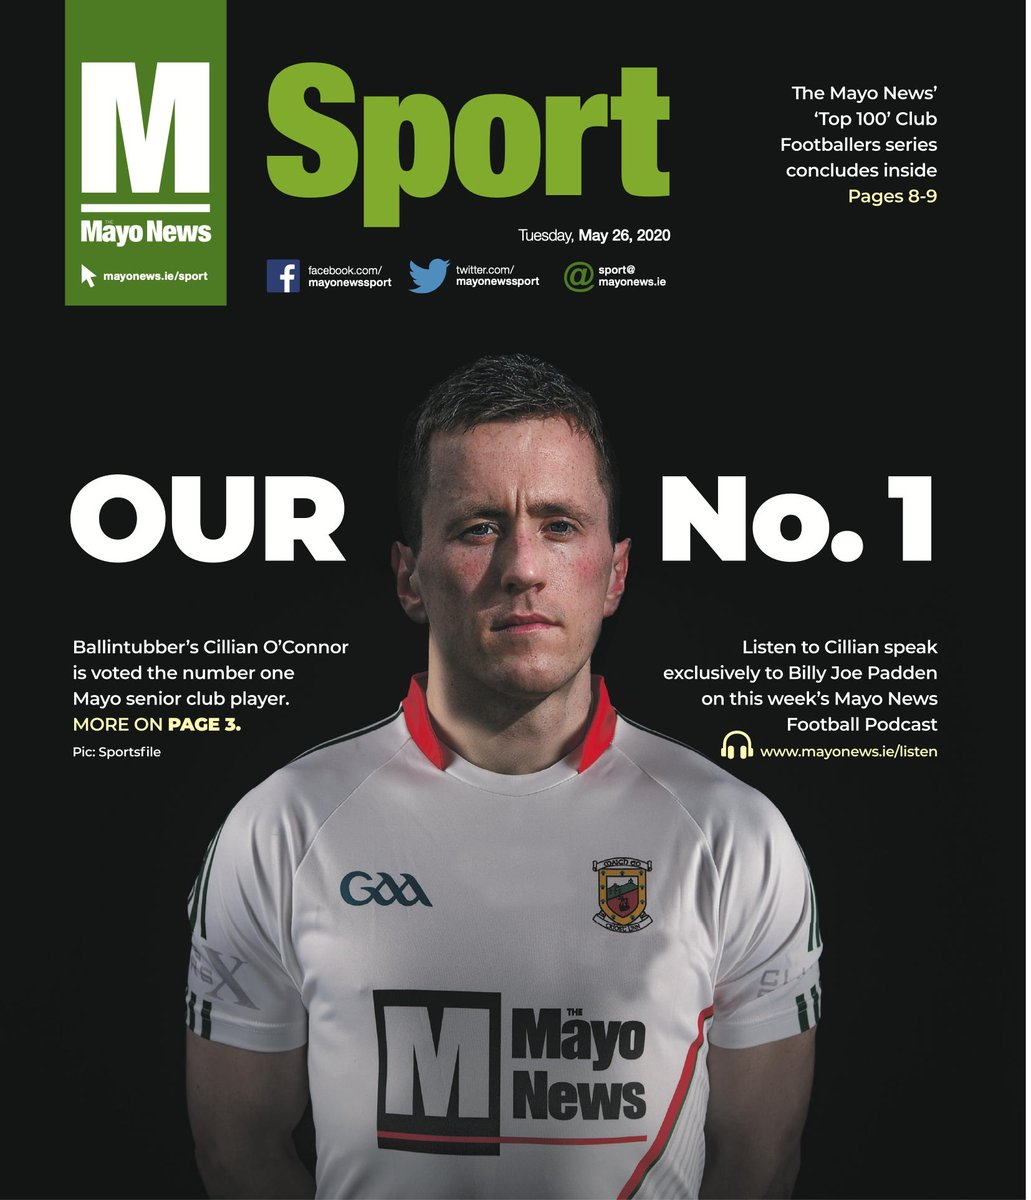 In today's 16-page sports section: Mayo GAA officials making provisional plans for return to action; Pearce Hanley on restarting in the AFL; Mayo soccer referee Damien McGrath on coping with the shutdown; and we reveal our Top 25 Mayo senior club player rankings. #mayogaa #mayo pic.twitter.com/KU7YLJNK4u